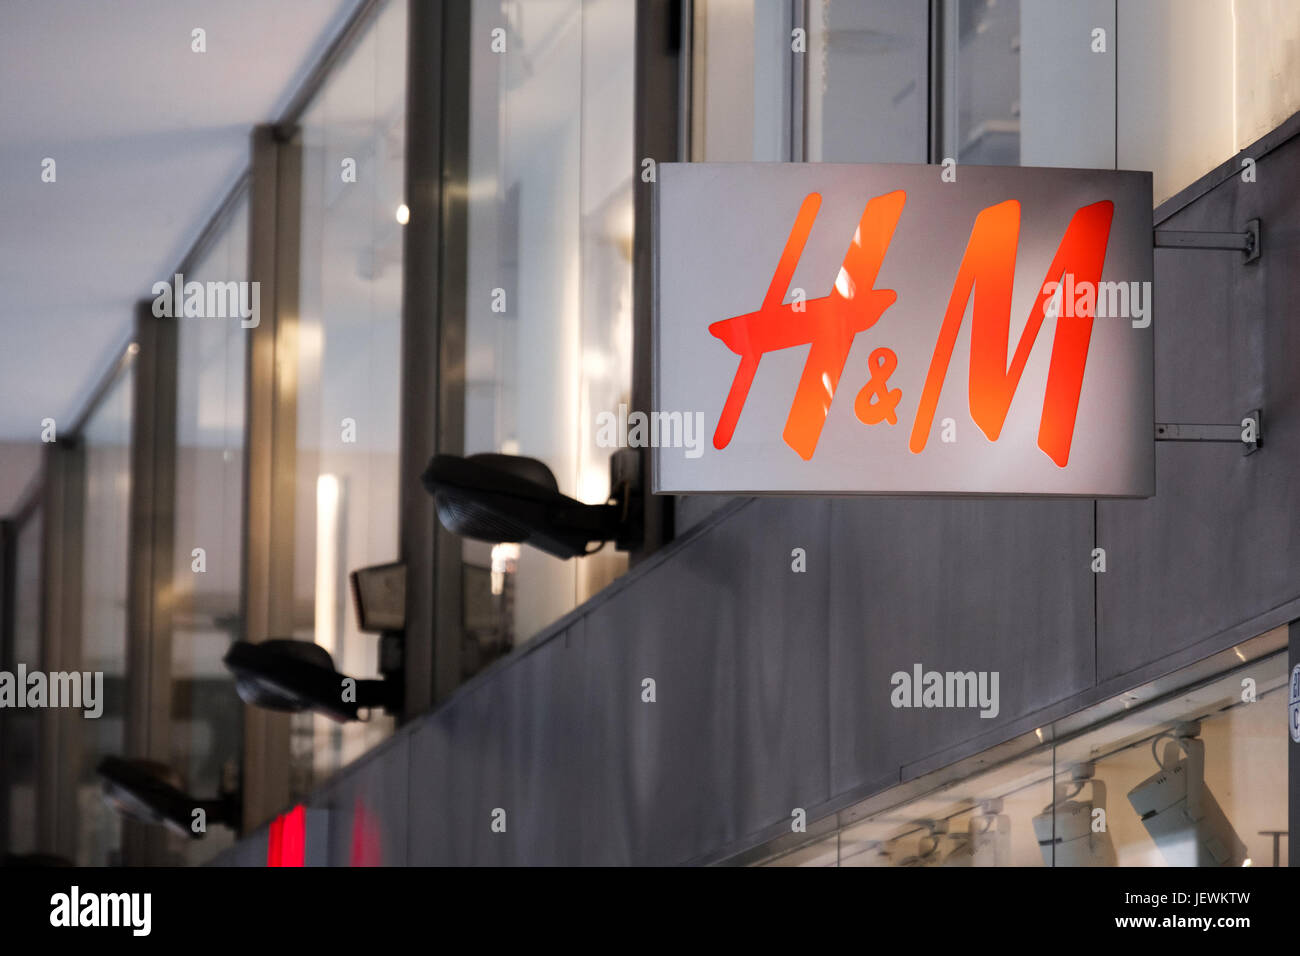 Bologna, Italy, 1 May 2017 - the H&M logo on the store sign of Bologna - Stock Image